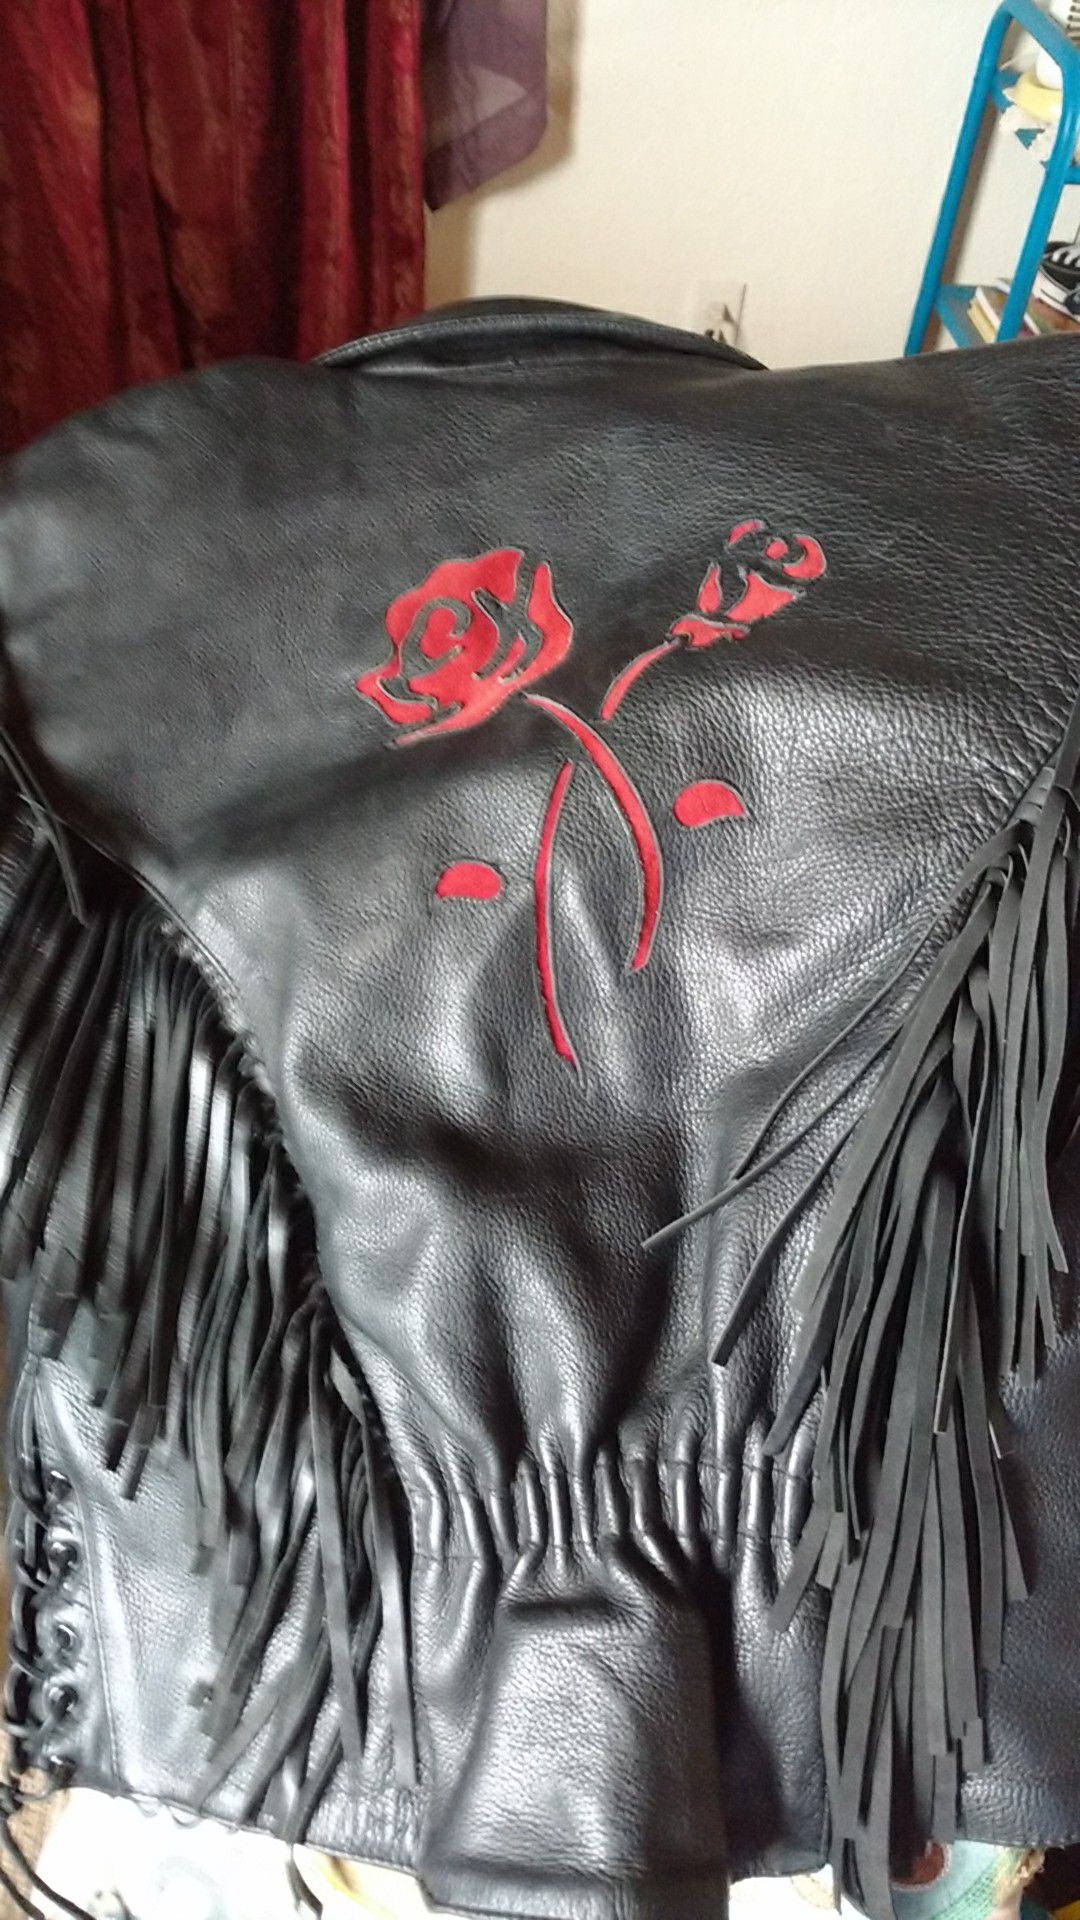 First, genuine leather